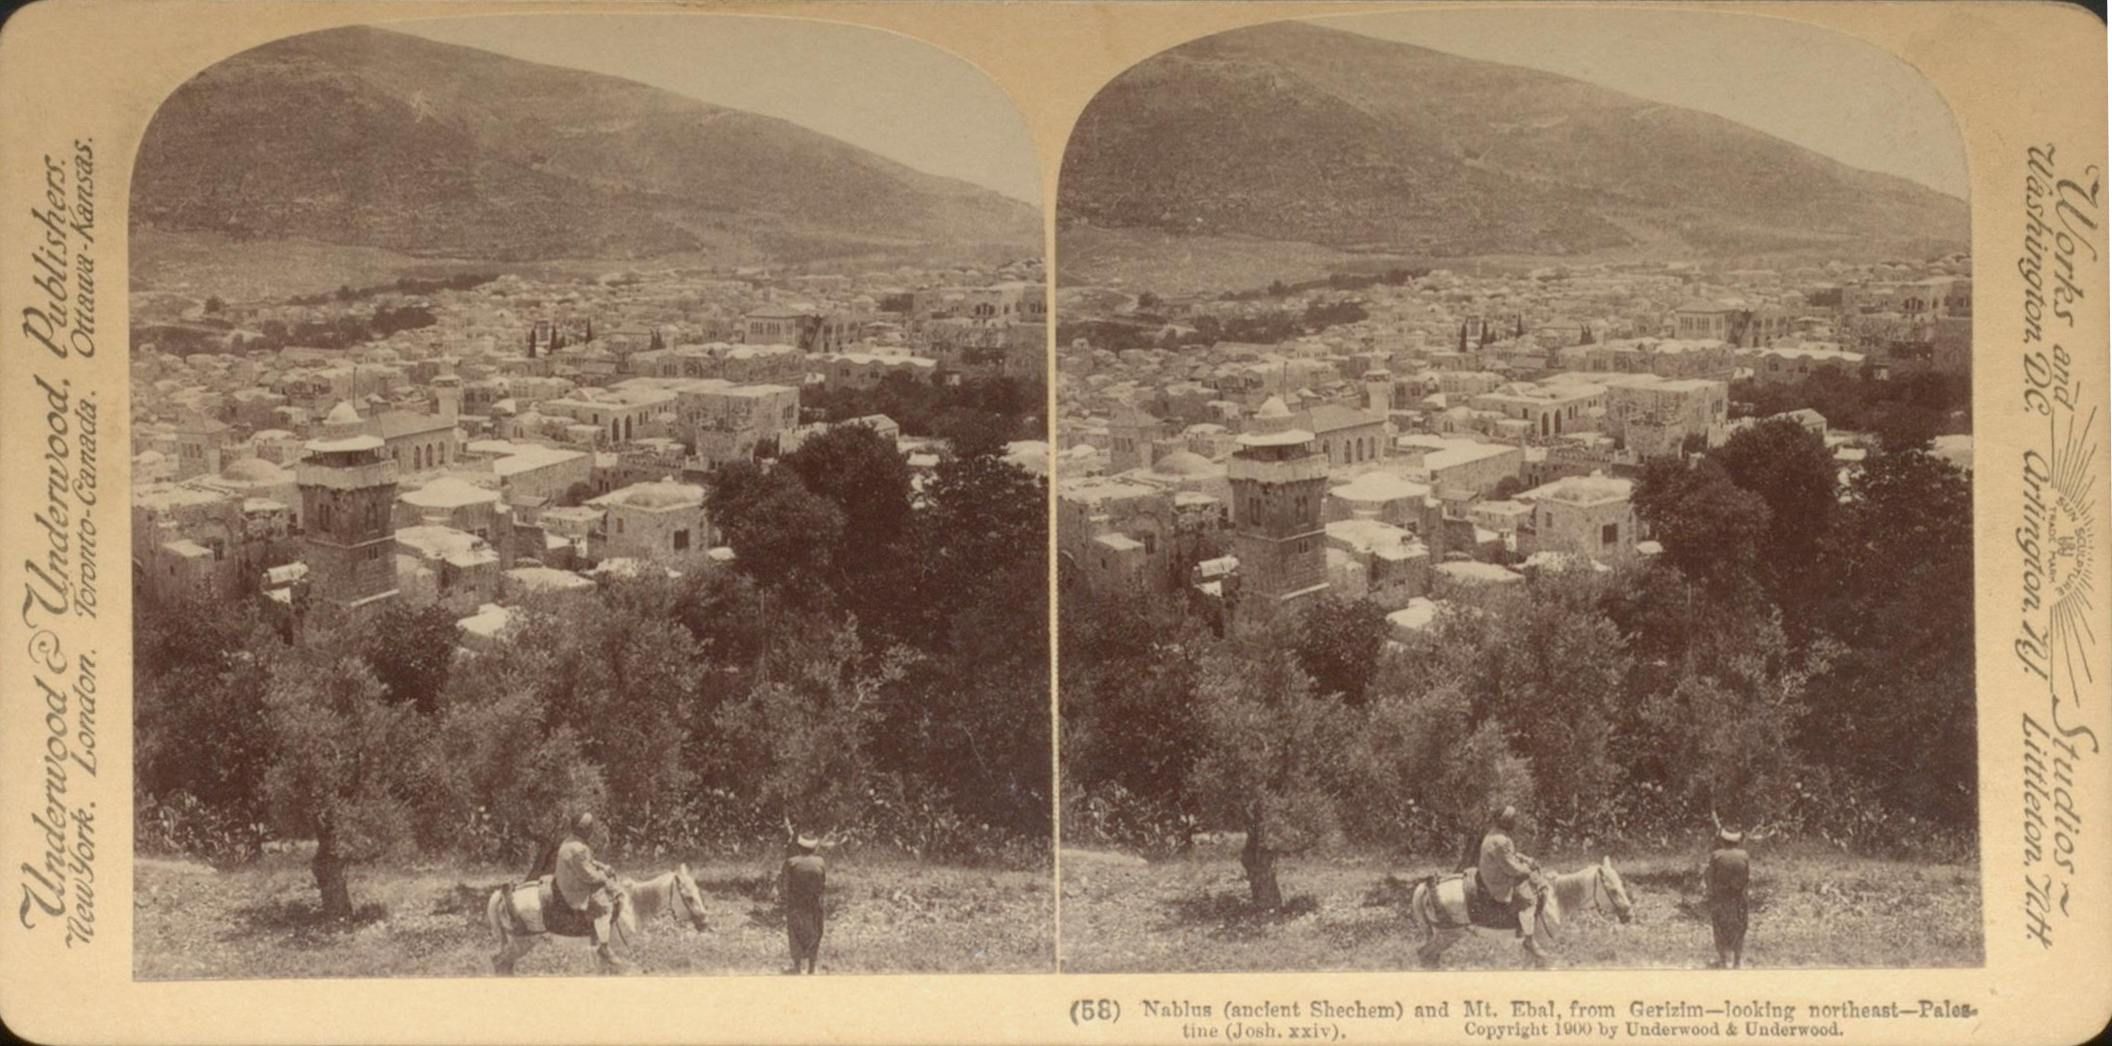 Stereoscope Photo from 1900 Shechem |The Journey: A New Generation Church of Christ